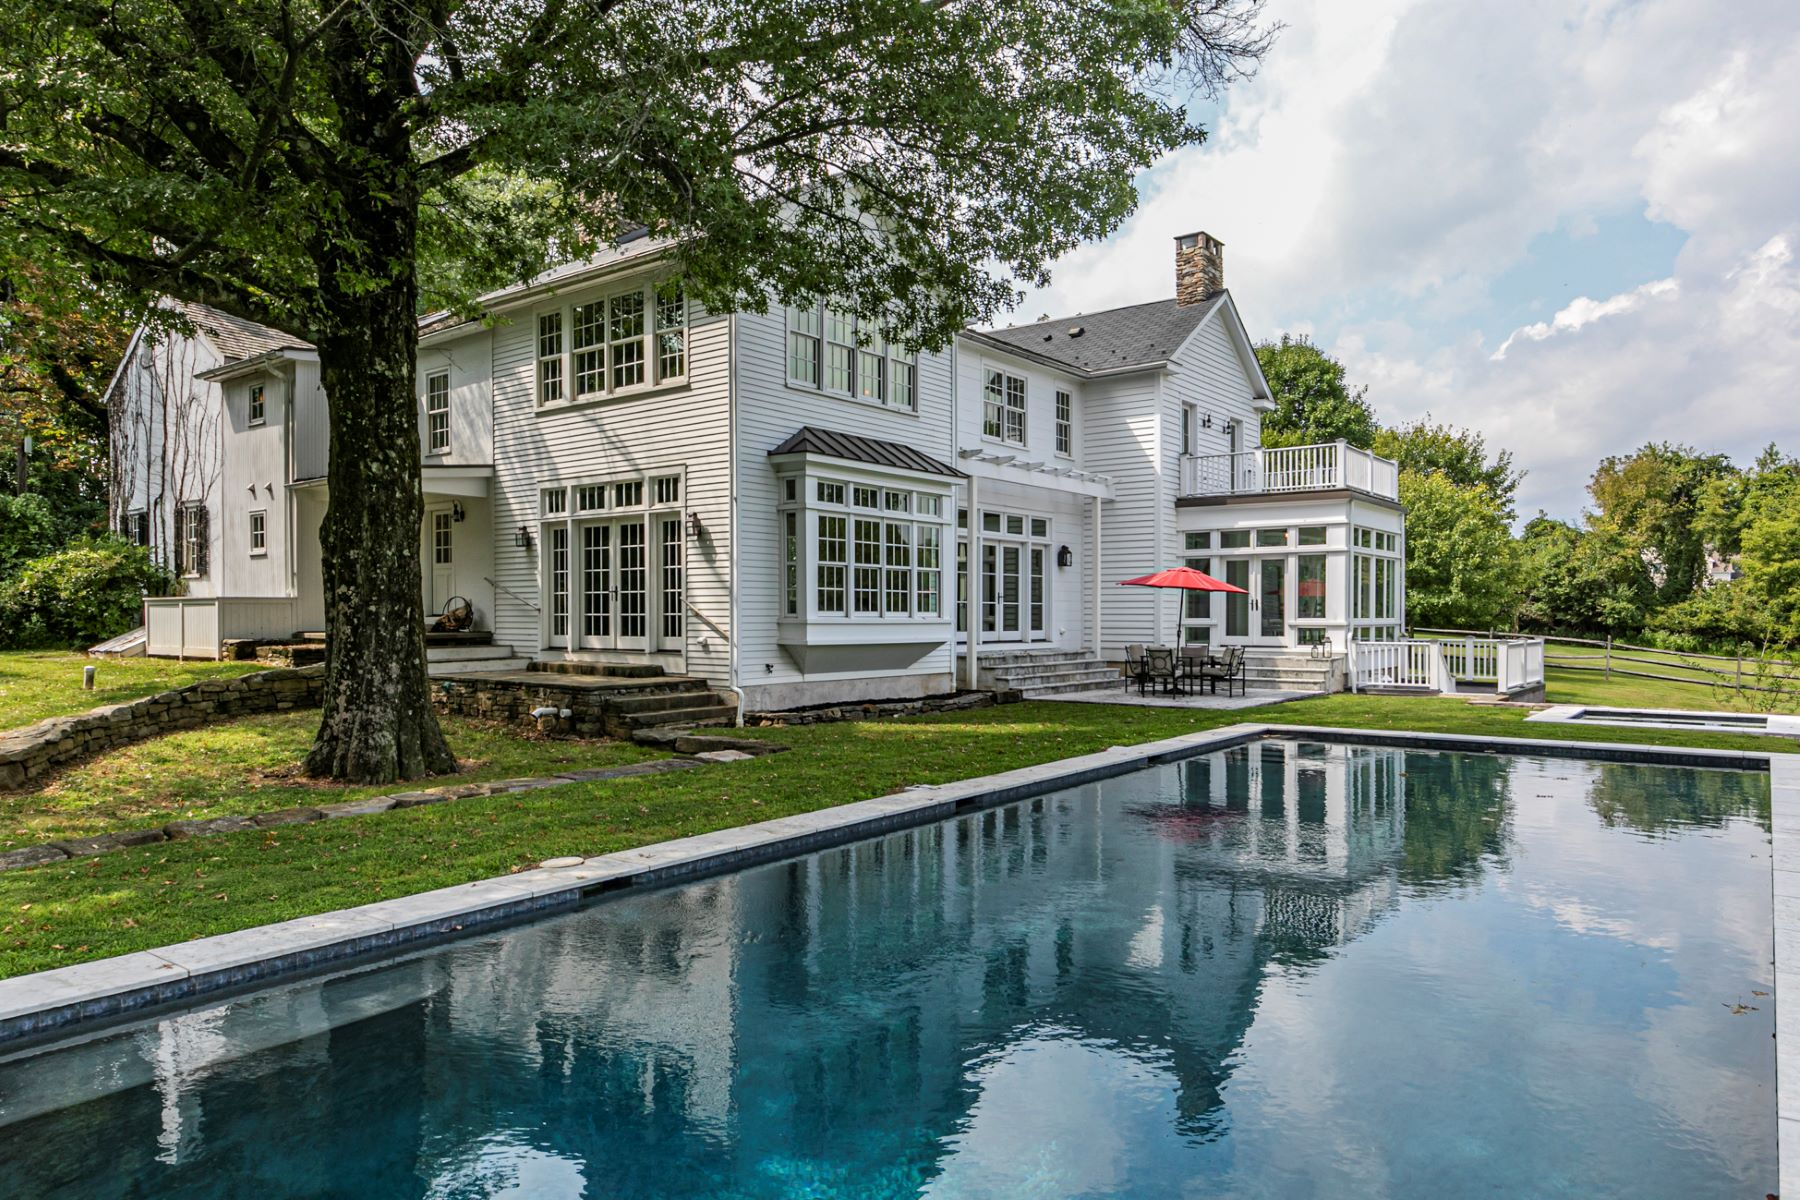 Single Family Homes für Verkauf beim A Stunning Renovation To A Historic Farmhouse 252 Myler Road, Bloomsbury, New Jersey 08804 Vereinigte Staaten